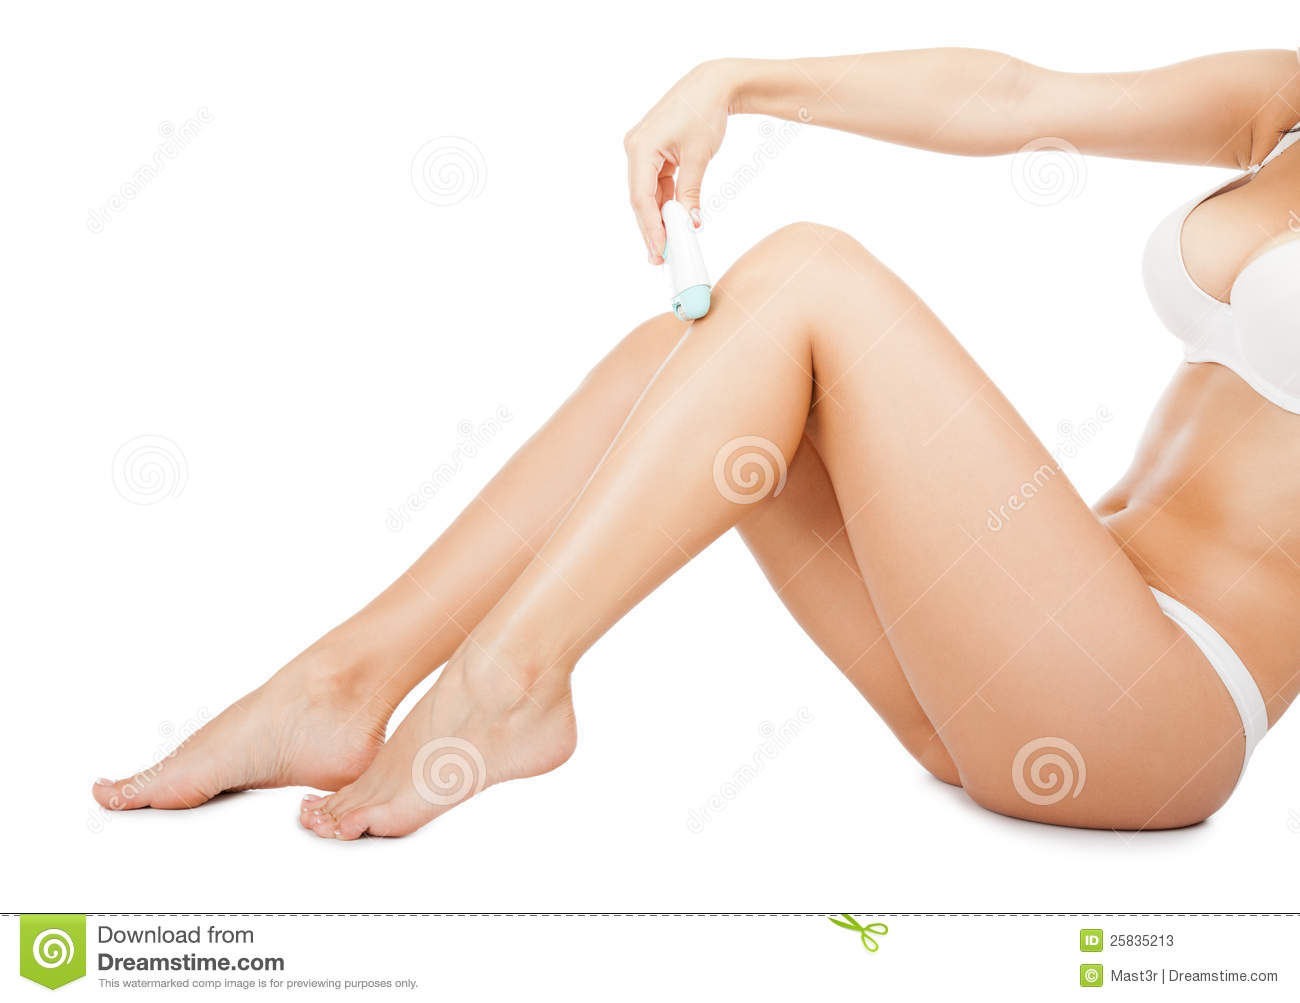 Pity, shaved legs on women useful message